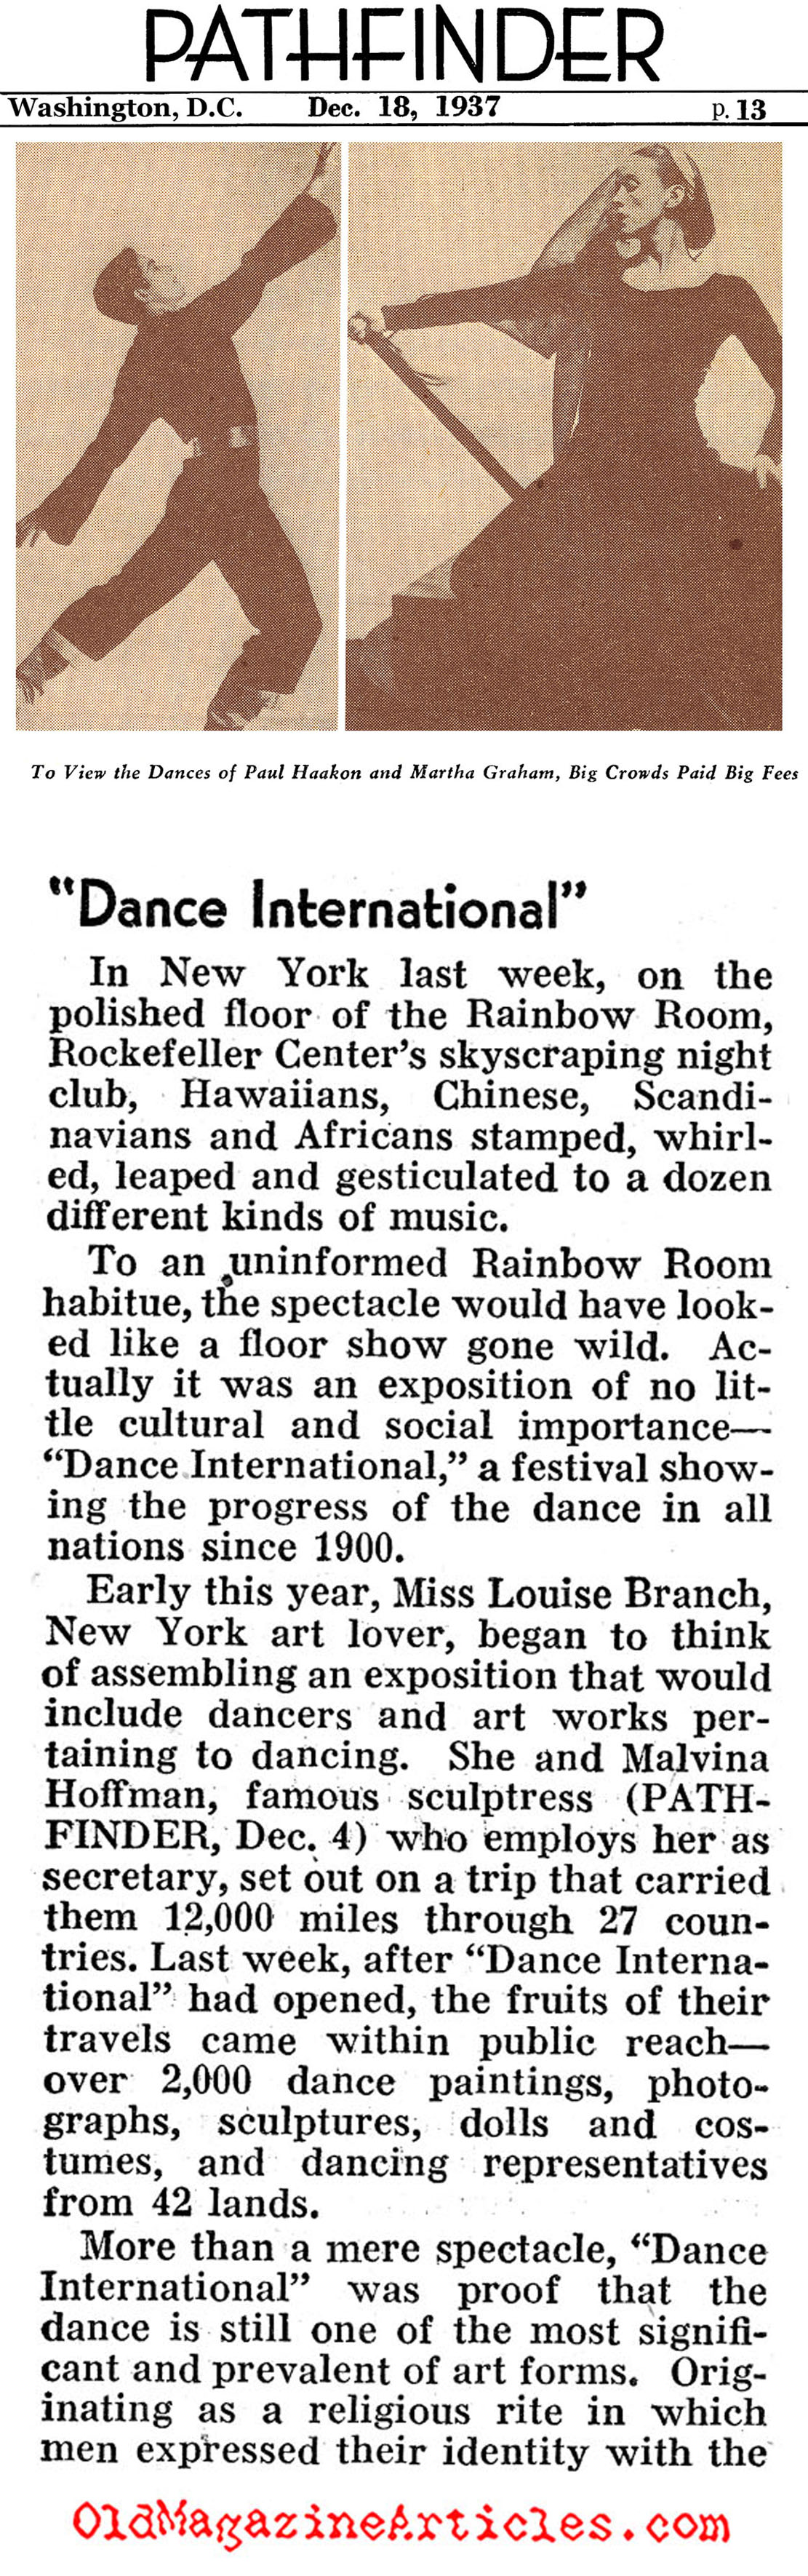 Dance International (Pathfinder Magazine, 1937)